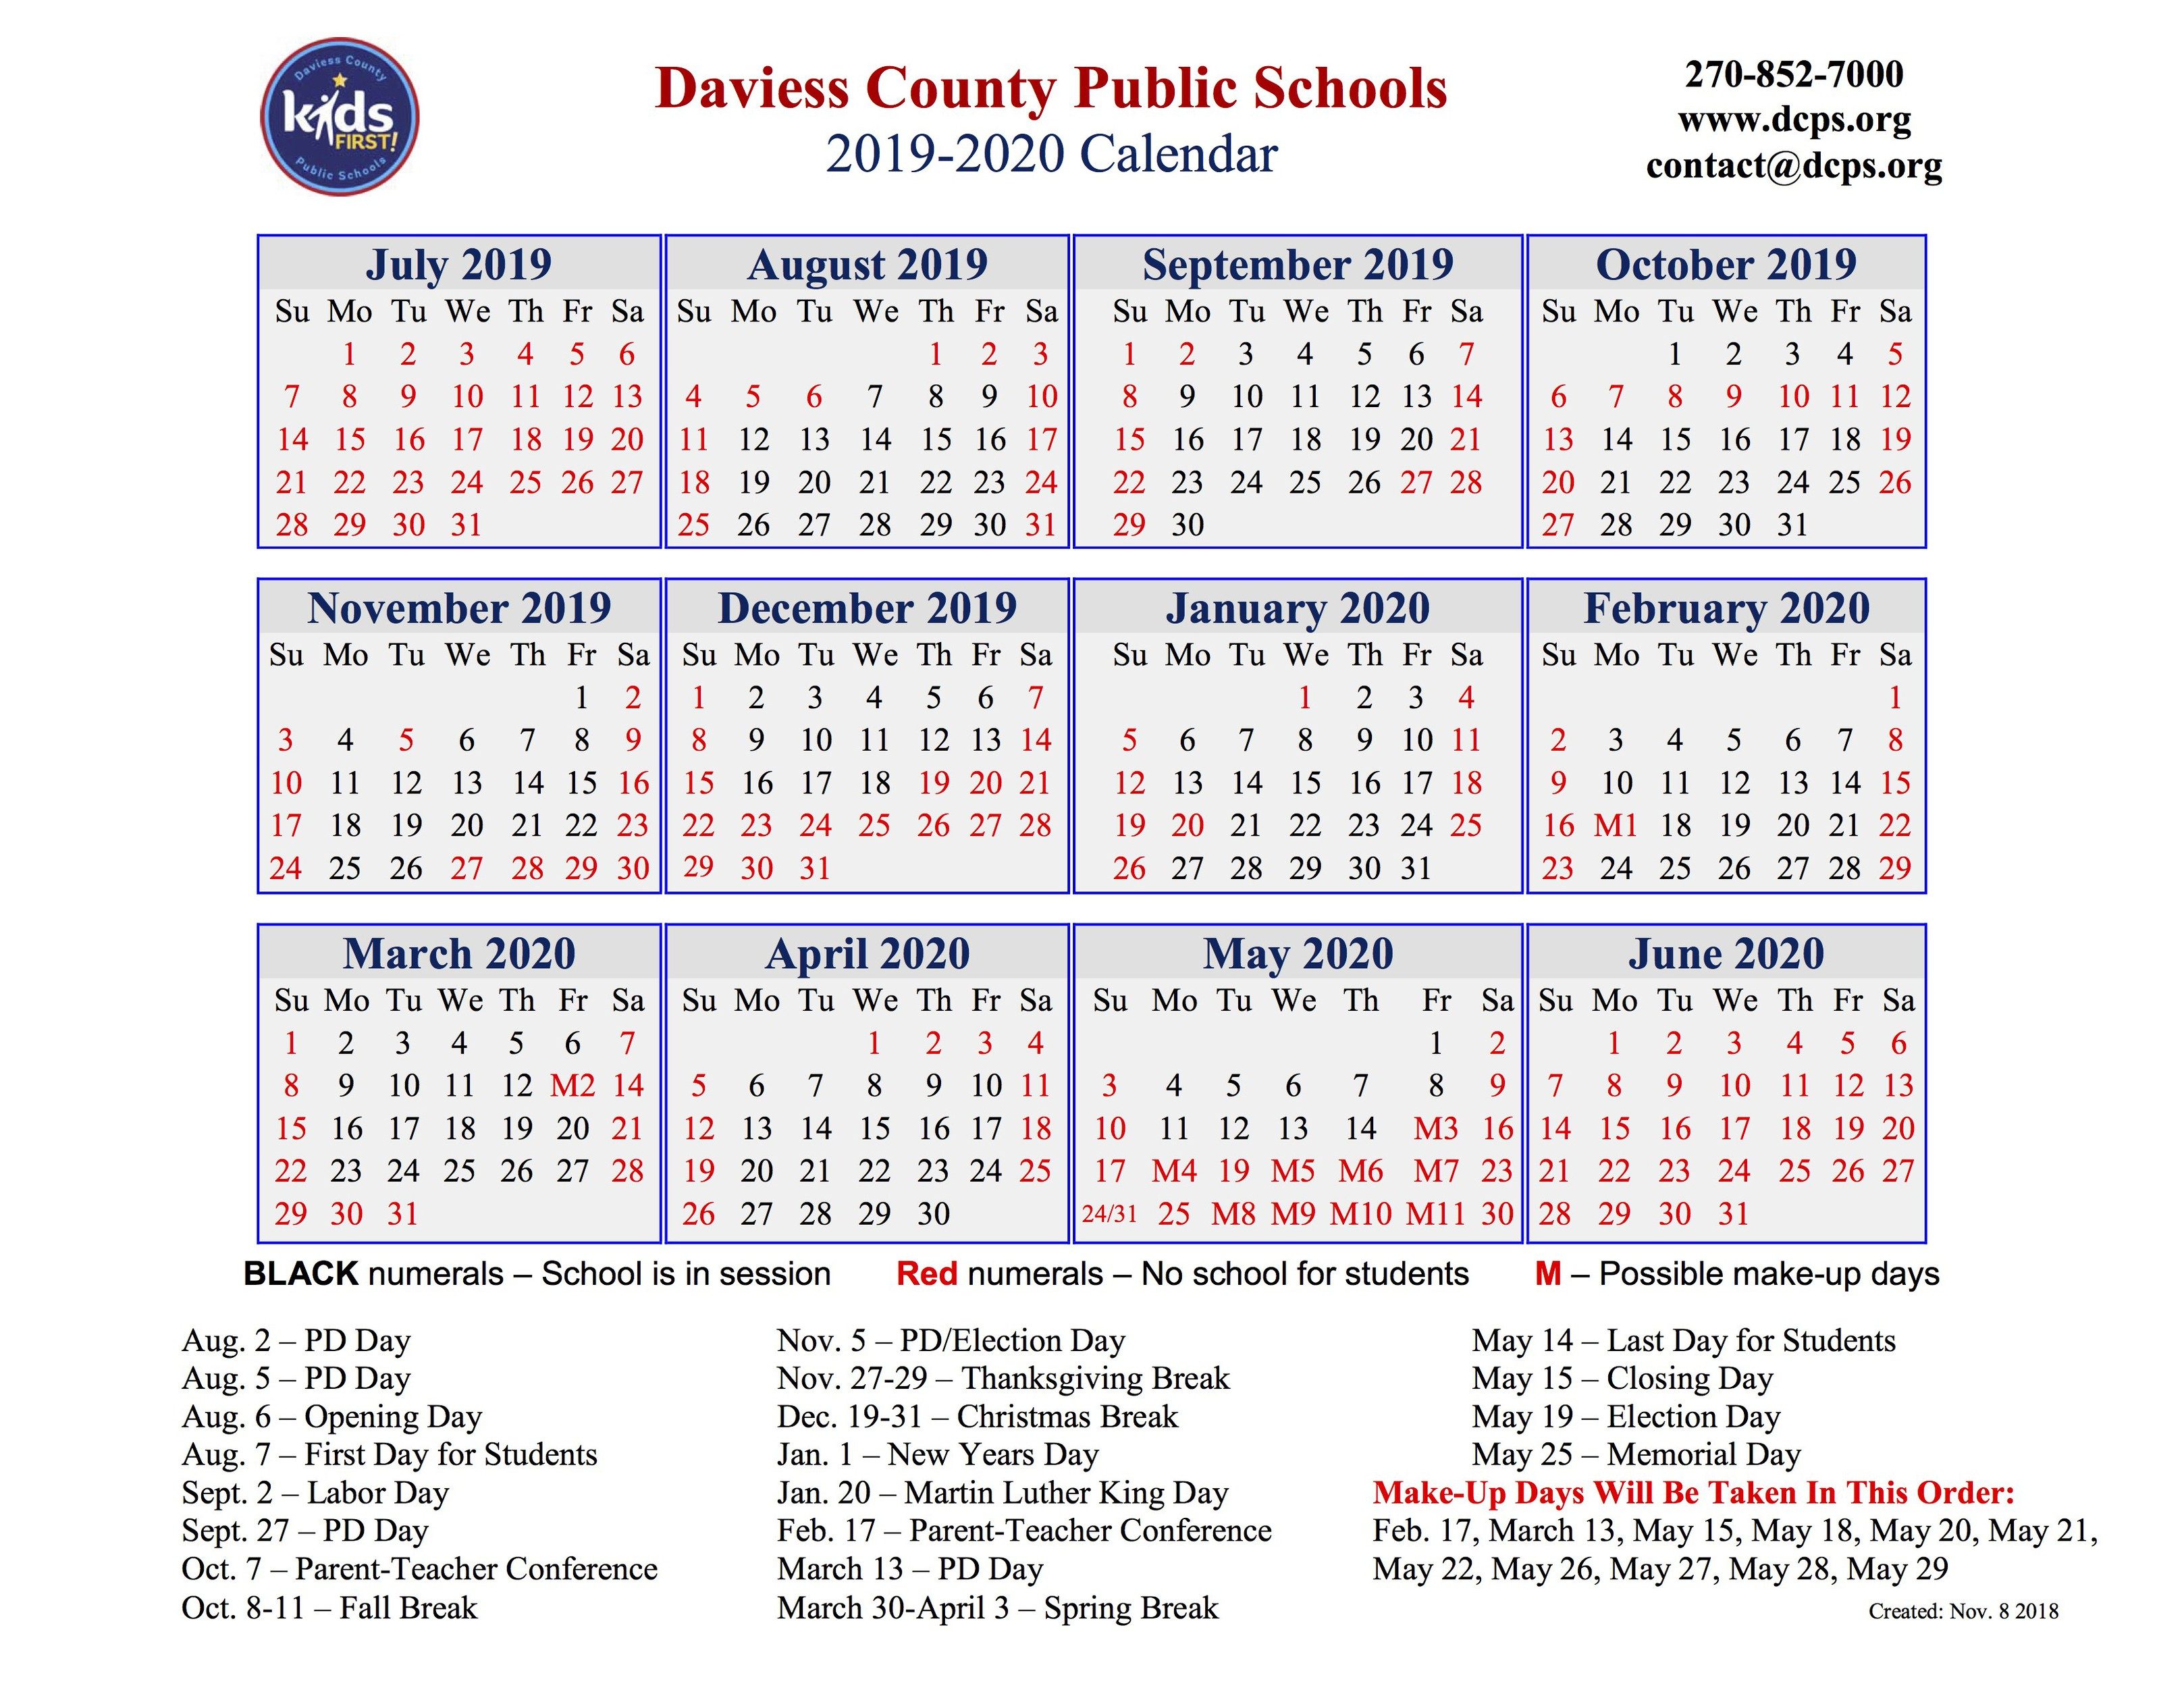 Dcps Approves 2019-2020 Calendar - The Owensboro Times inside Calendar With Special Days 2020